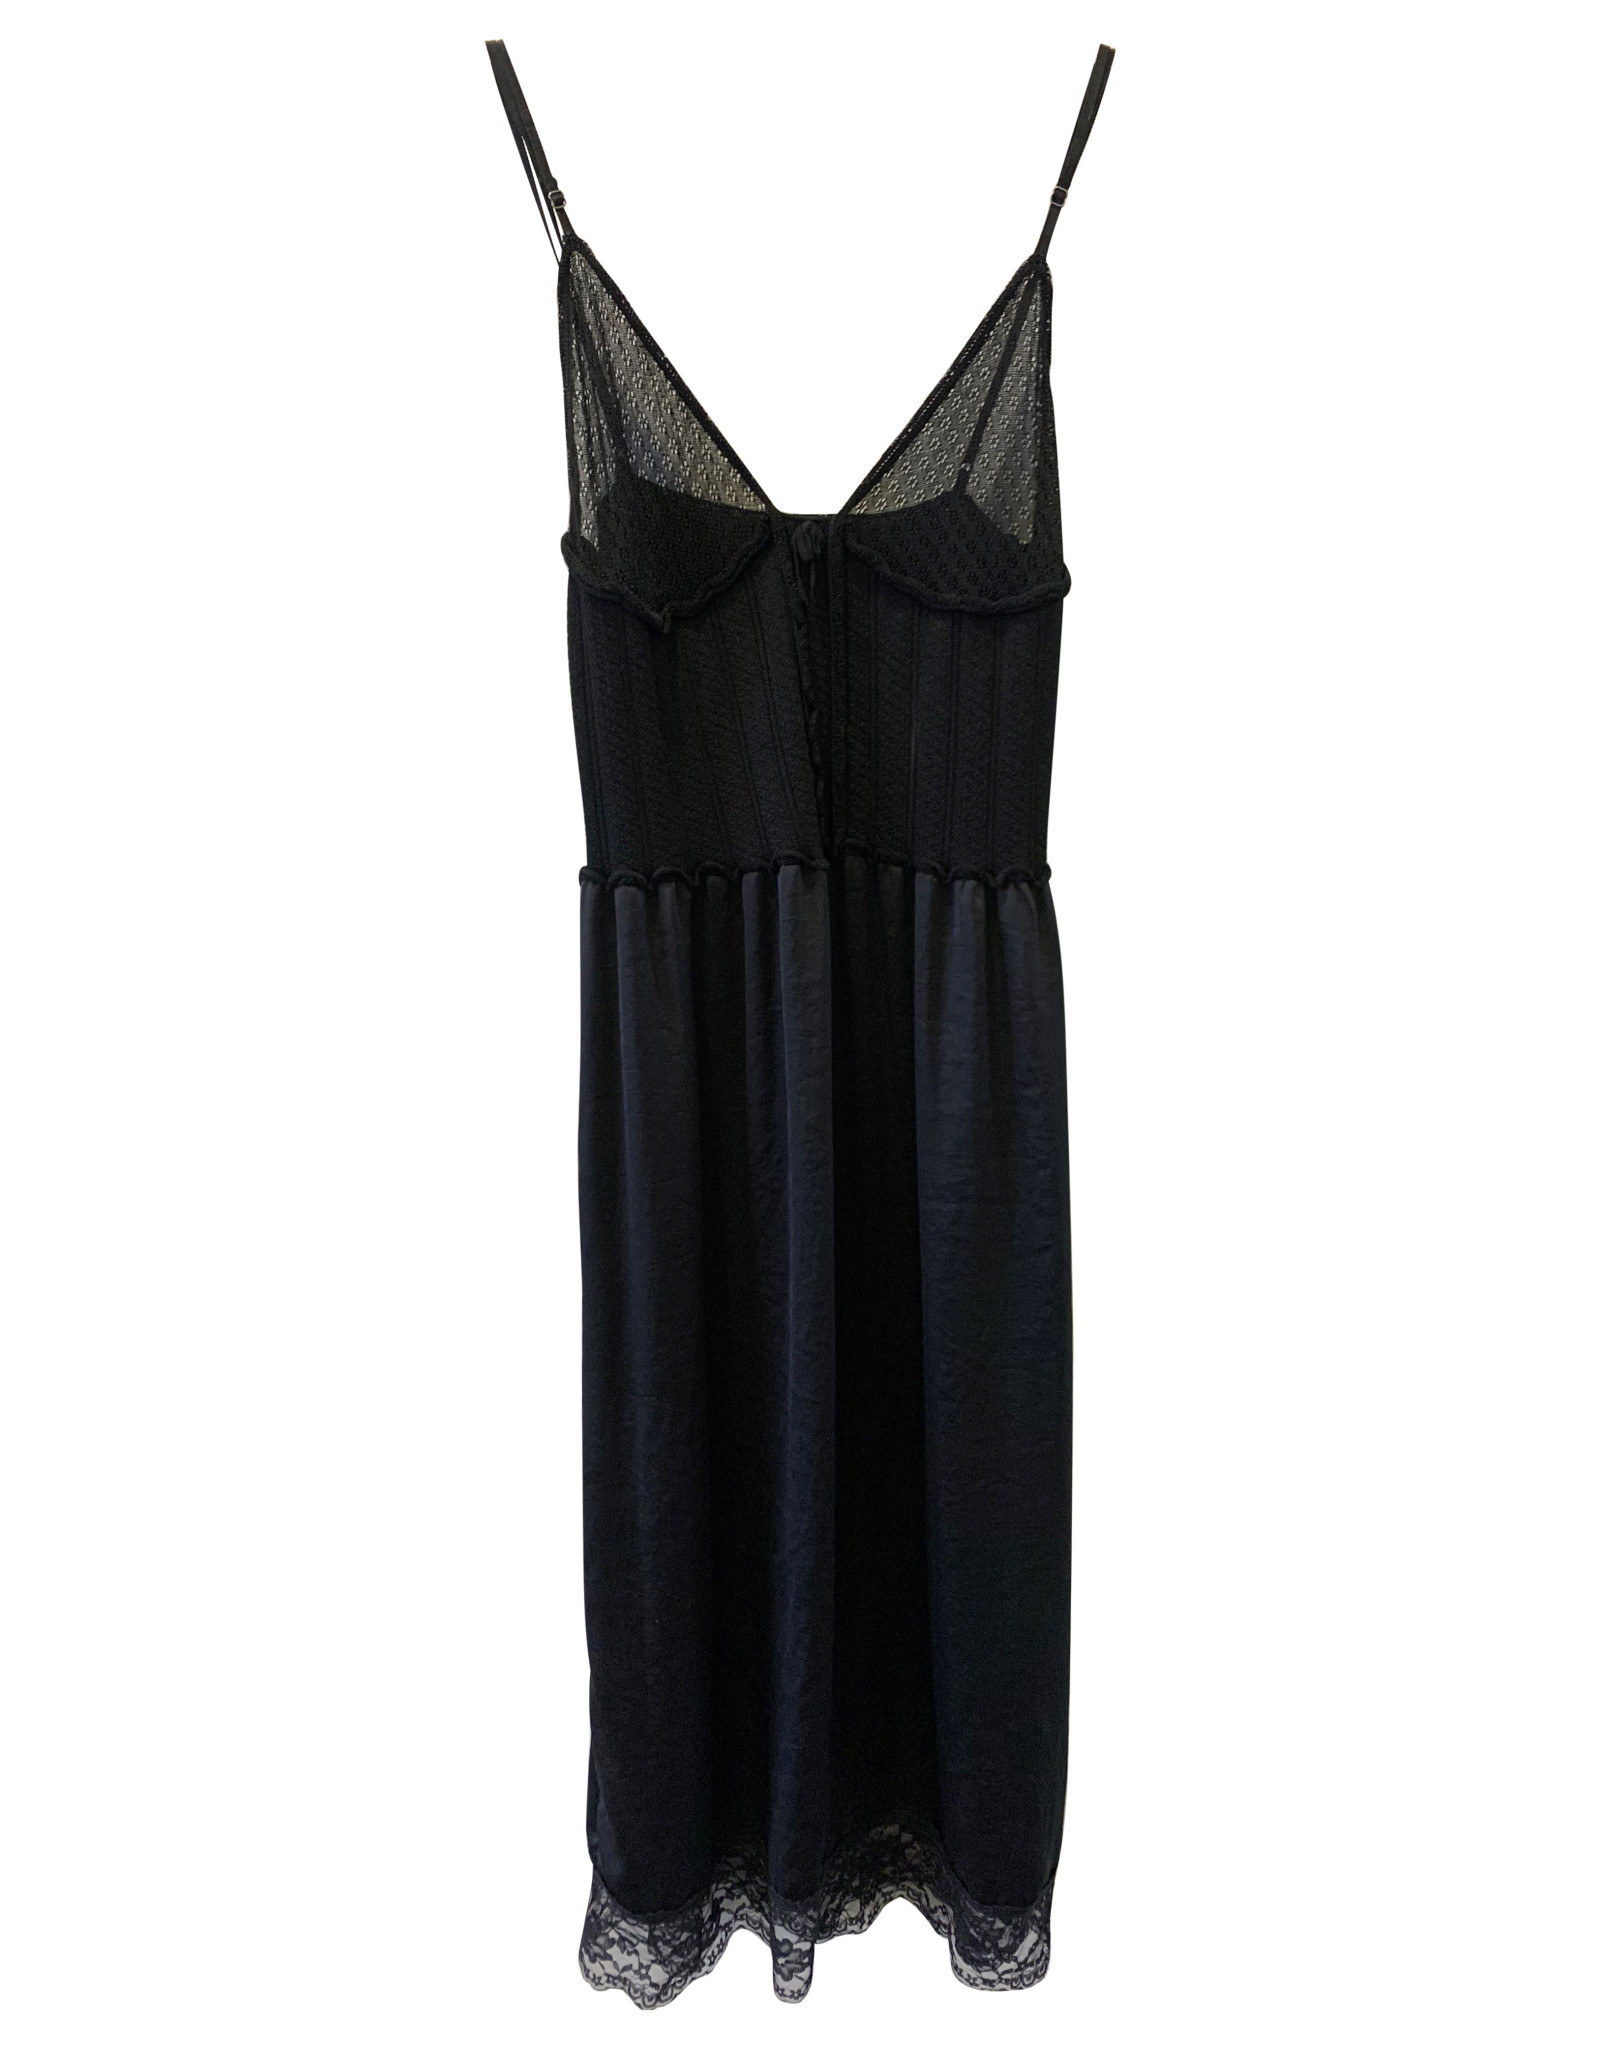 Alexander McQueen Alexander McQueen Black Silk Dress